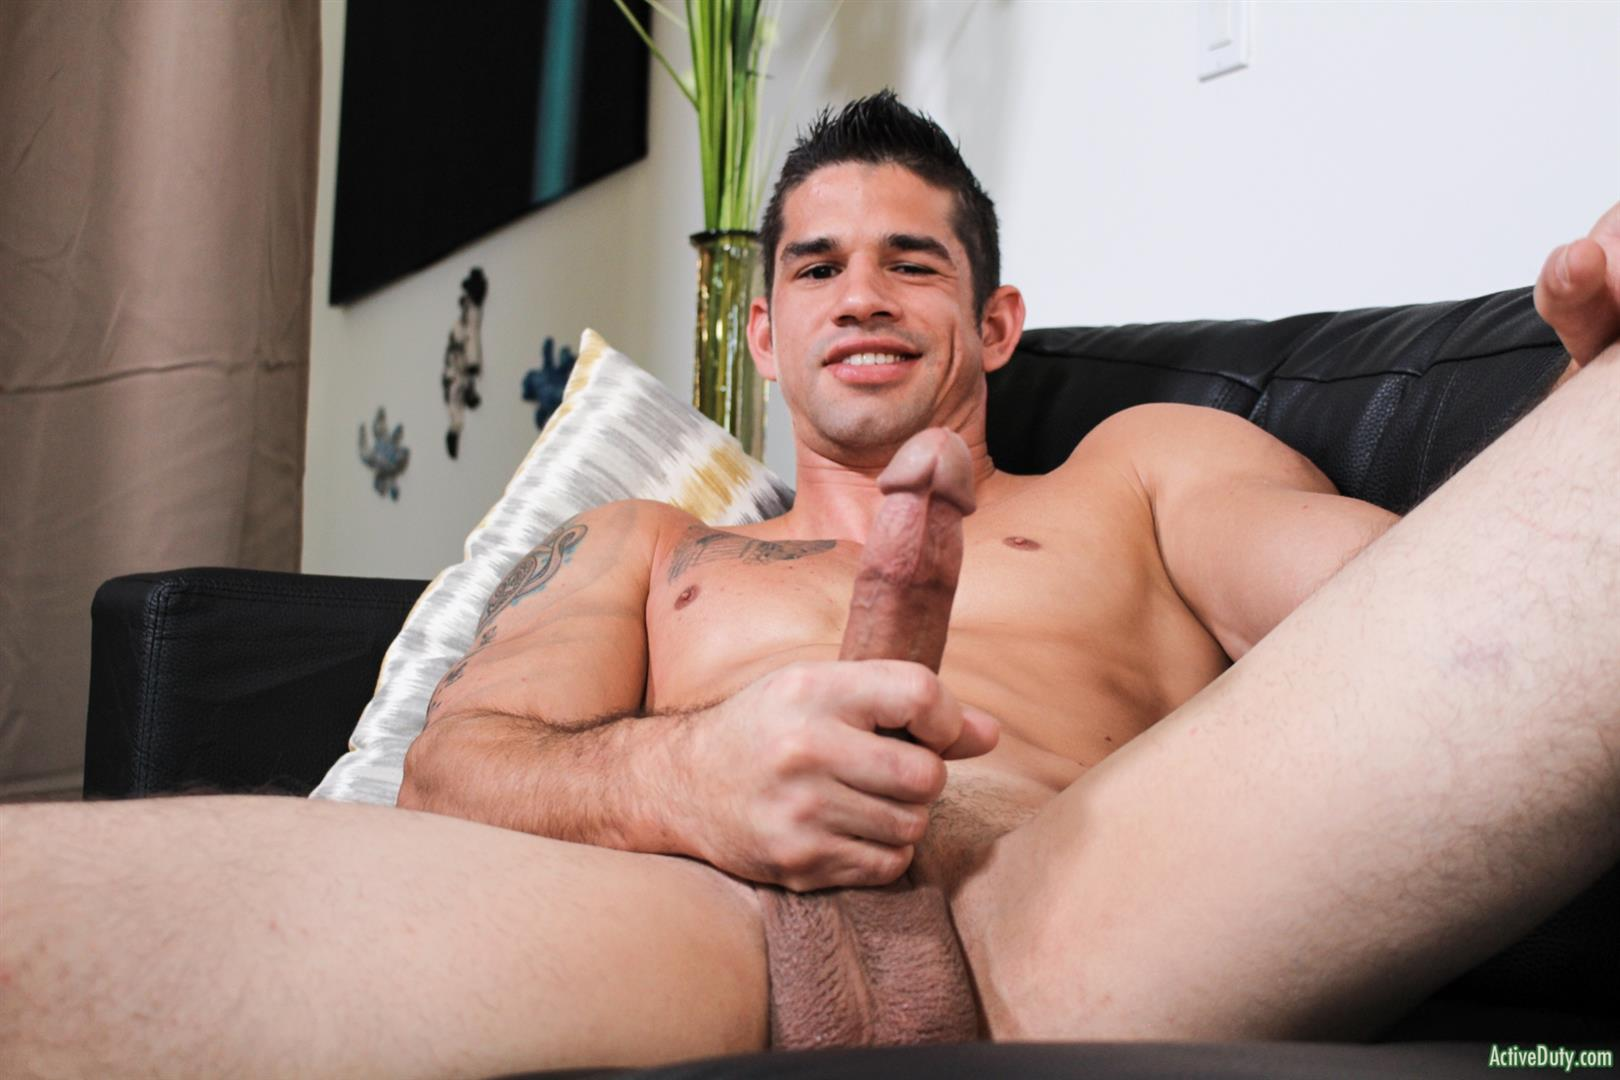 Active-Duty-Jason-Richards-Army-Naked-Soldier-With-A-Big-Cock-06 Check Out The Long Cock On This New Army Recruit